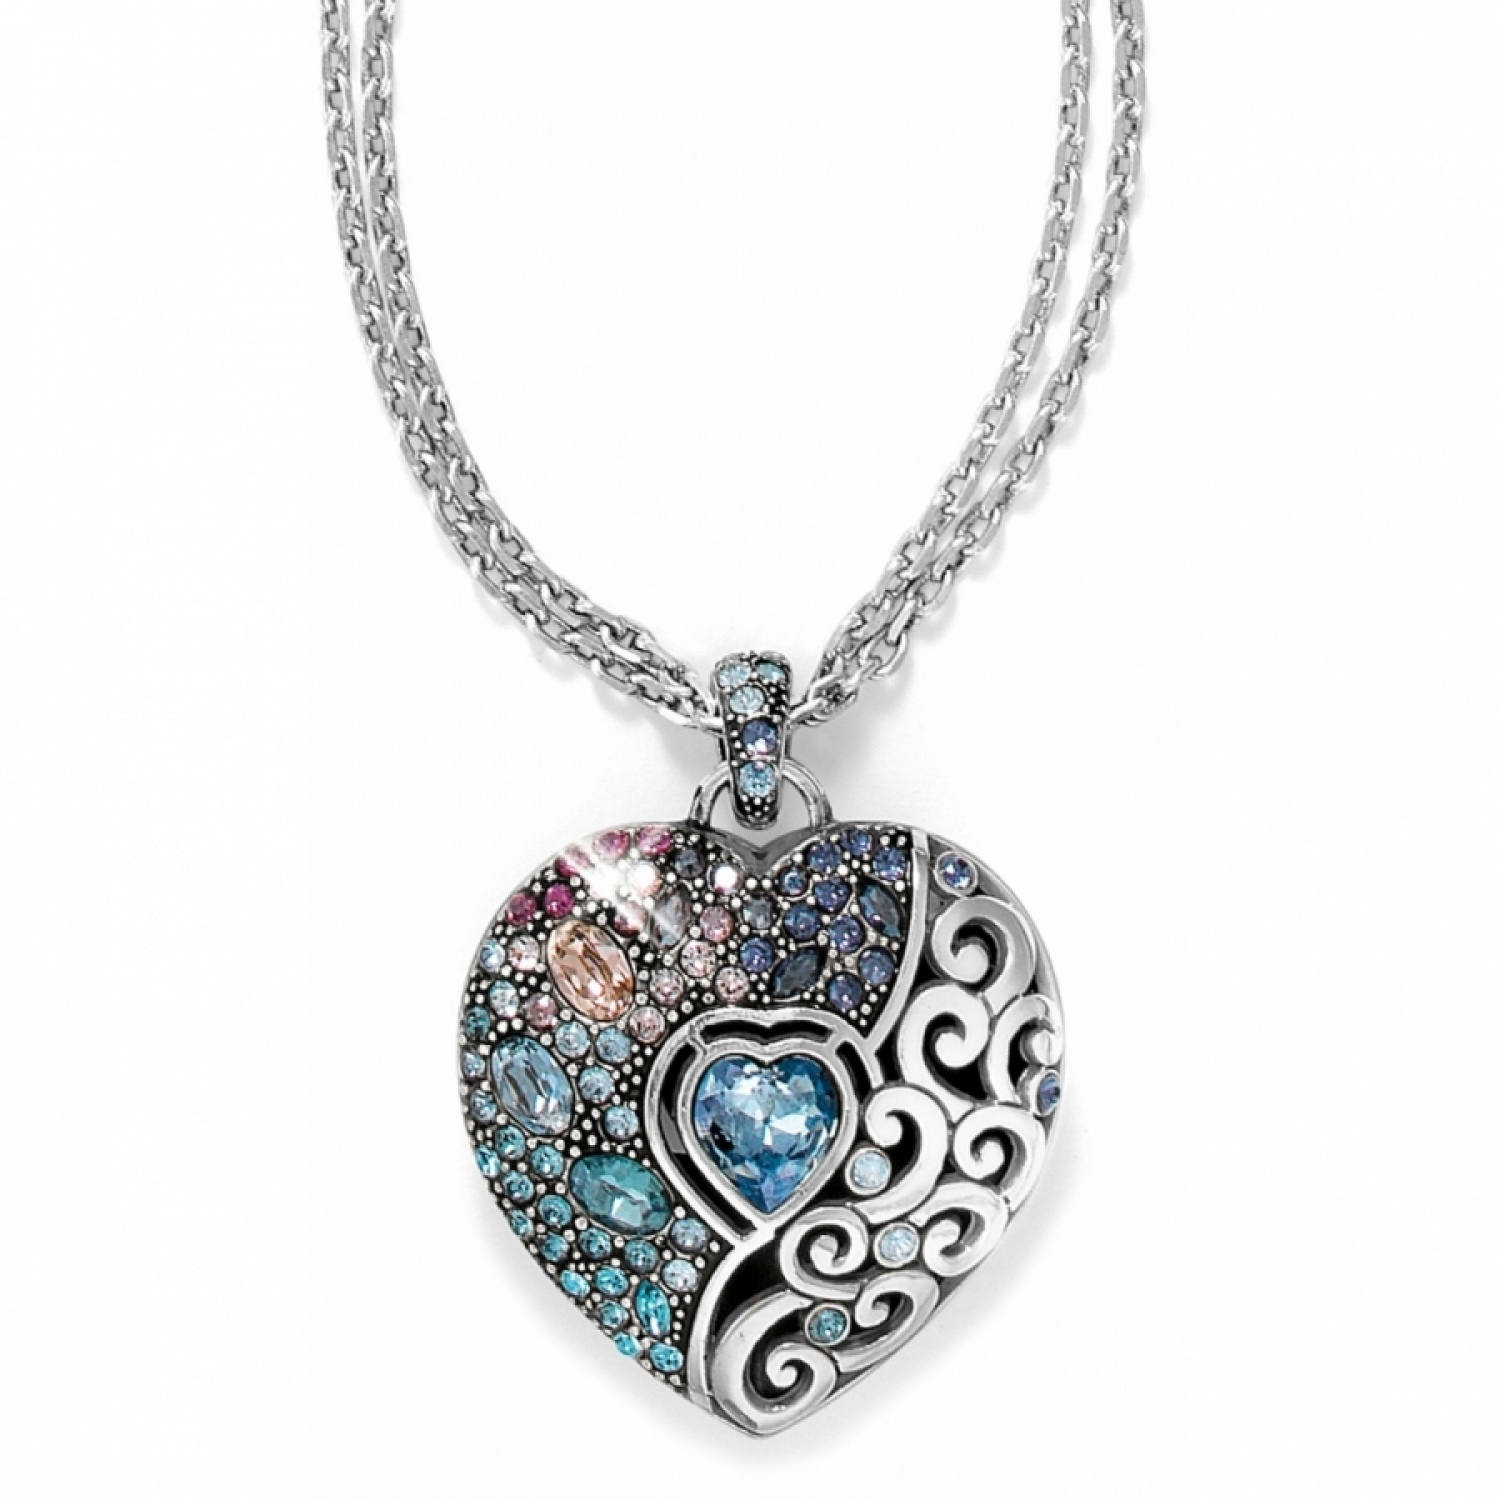 Welcome to Novica's Handmade Necklace Gallery. Discover unique gemstone necklaces handmade by extraordinary artisans! We hope you enjoy viewing our handmade gemstone necklaces.